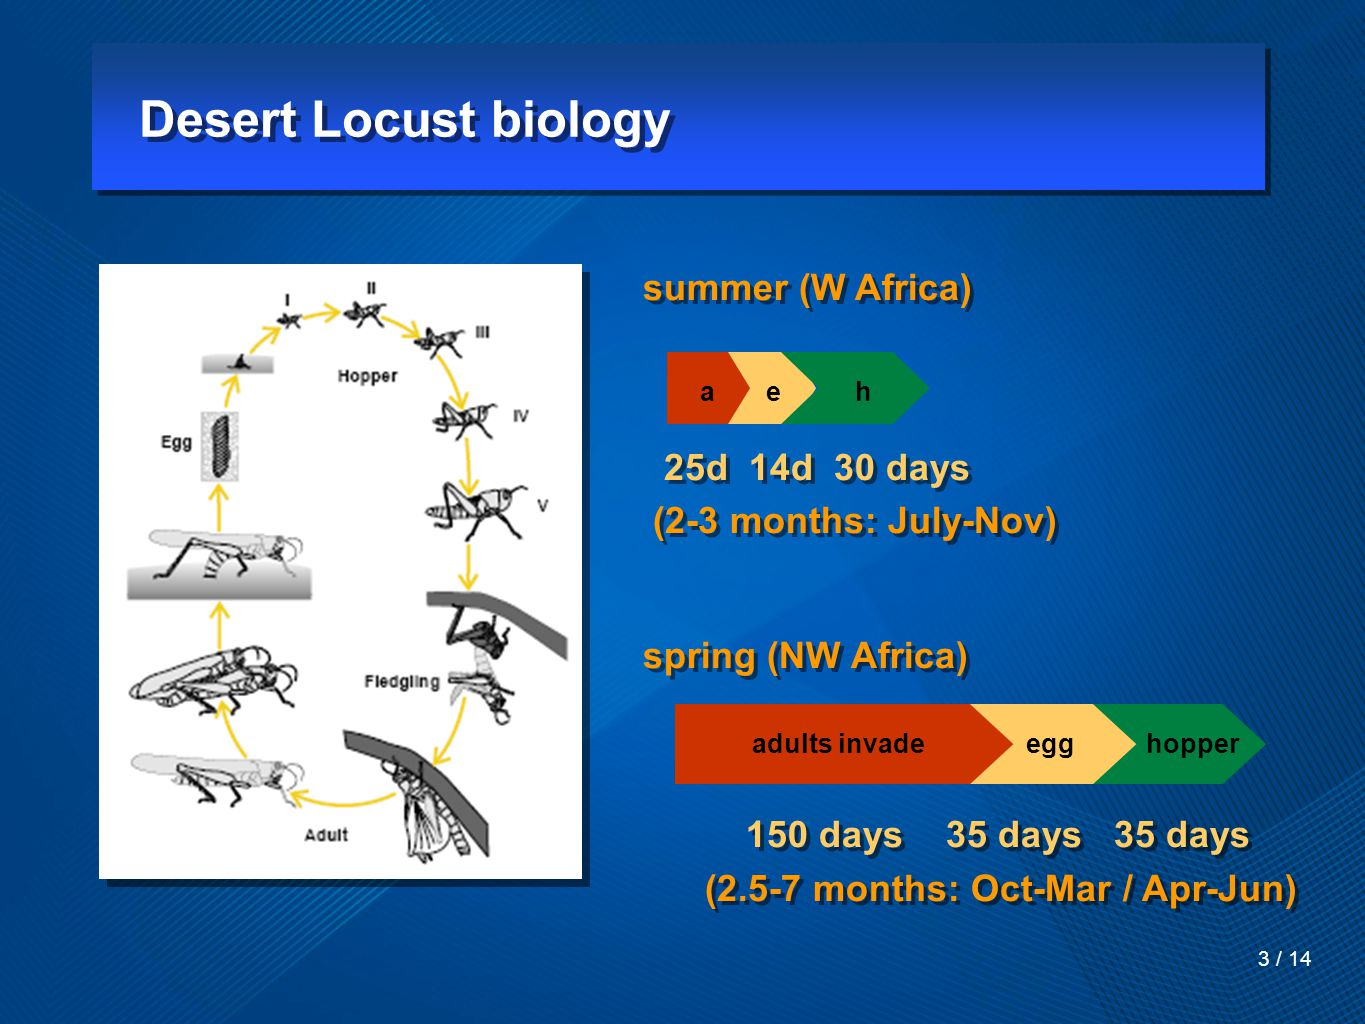 Desert Locust biology 3 / 14 summer (W Africa) 25d 14d 30 days (2-3 months: July-Nov) spring (NW Africa) 150 days 35 days 35 days (2.5-7 months: Oct-Mar / Apr-Jun) summer (W Africa) 25d 14d 30 days (2-3 months: July-Nov) spring (NW Africa) 150 days 35 days 35 days (2.5-7 months: Oct-Mar / Apr-Jun) adults invade egg hopper a e h